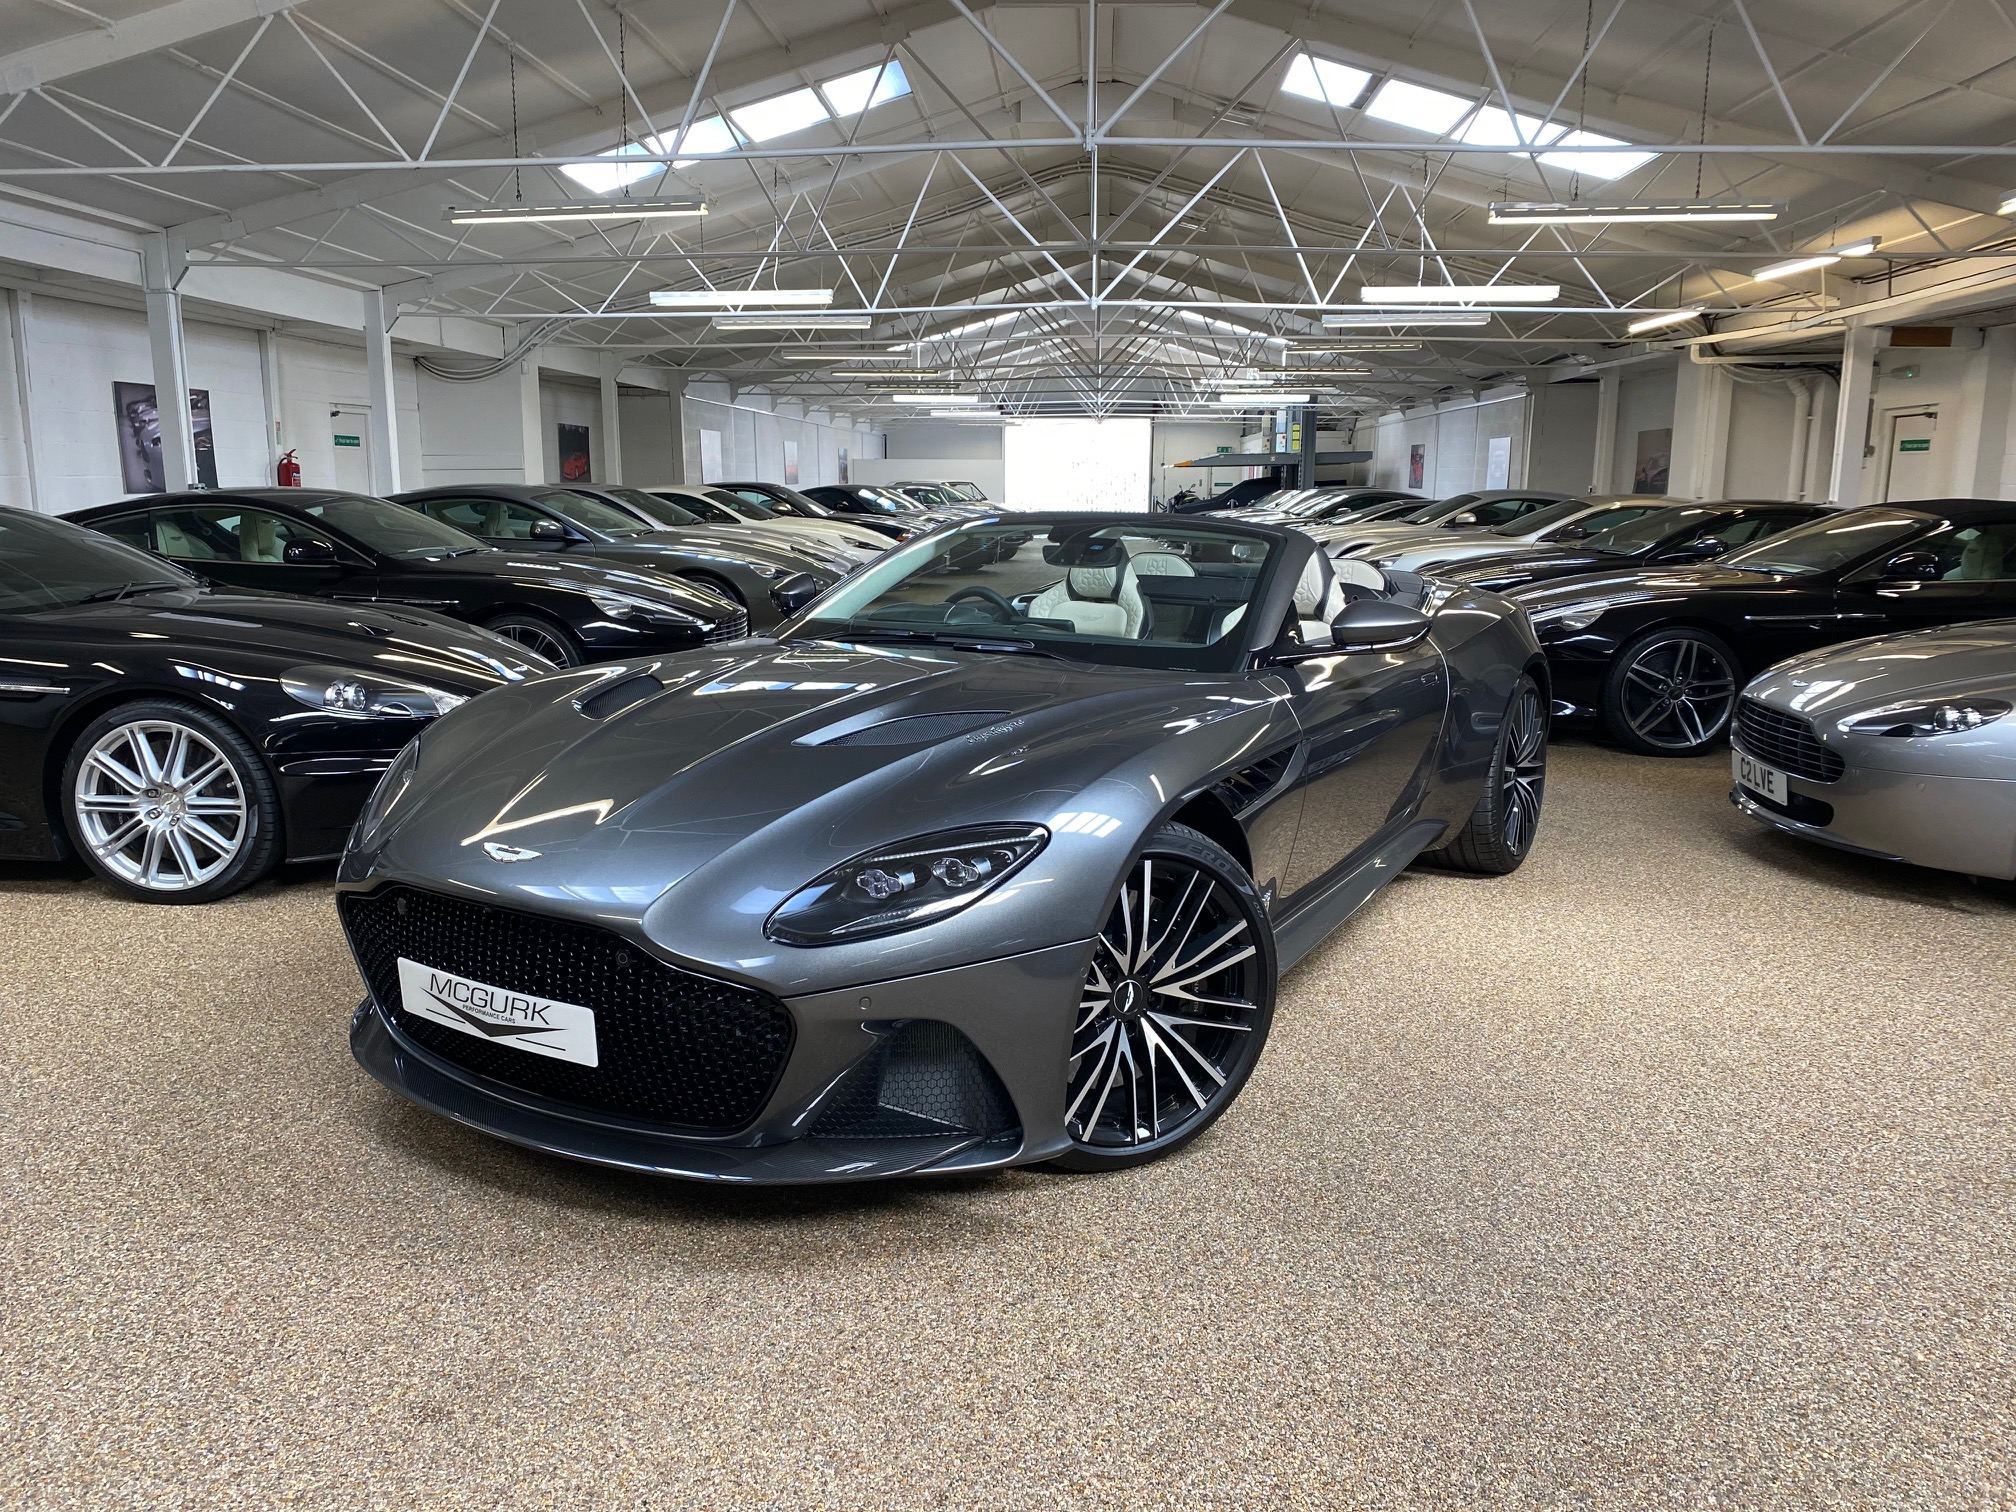 DBS Superleggera Volante for sale